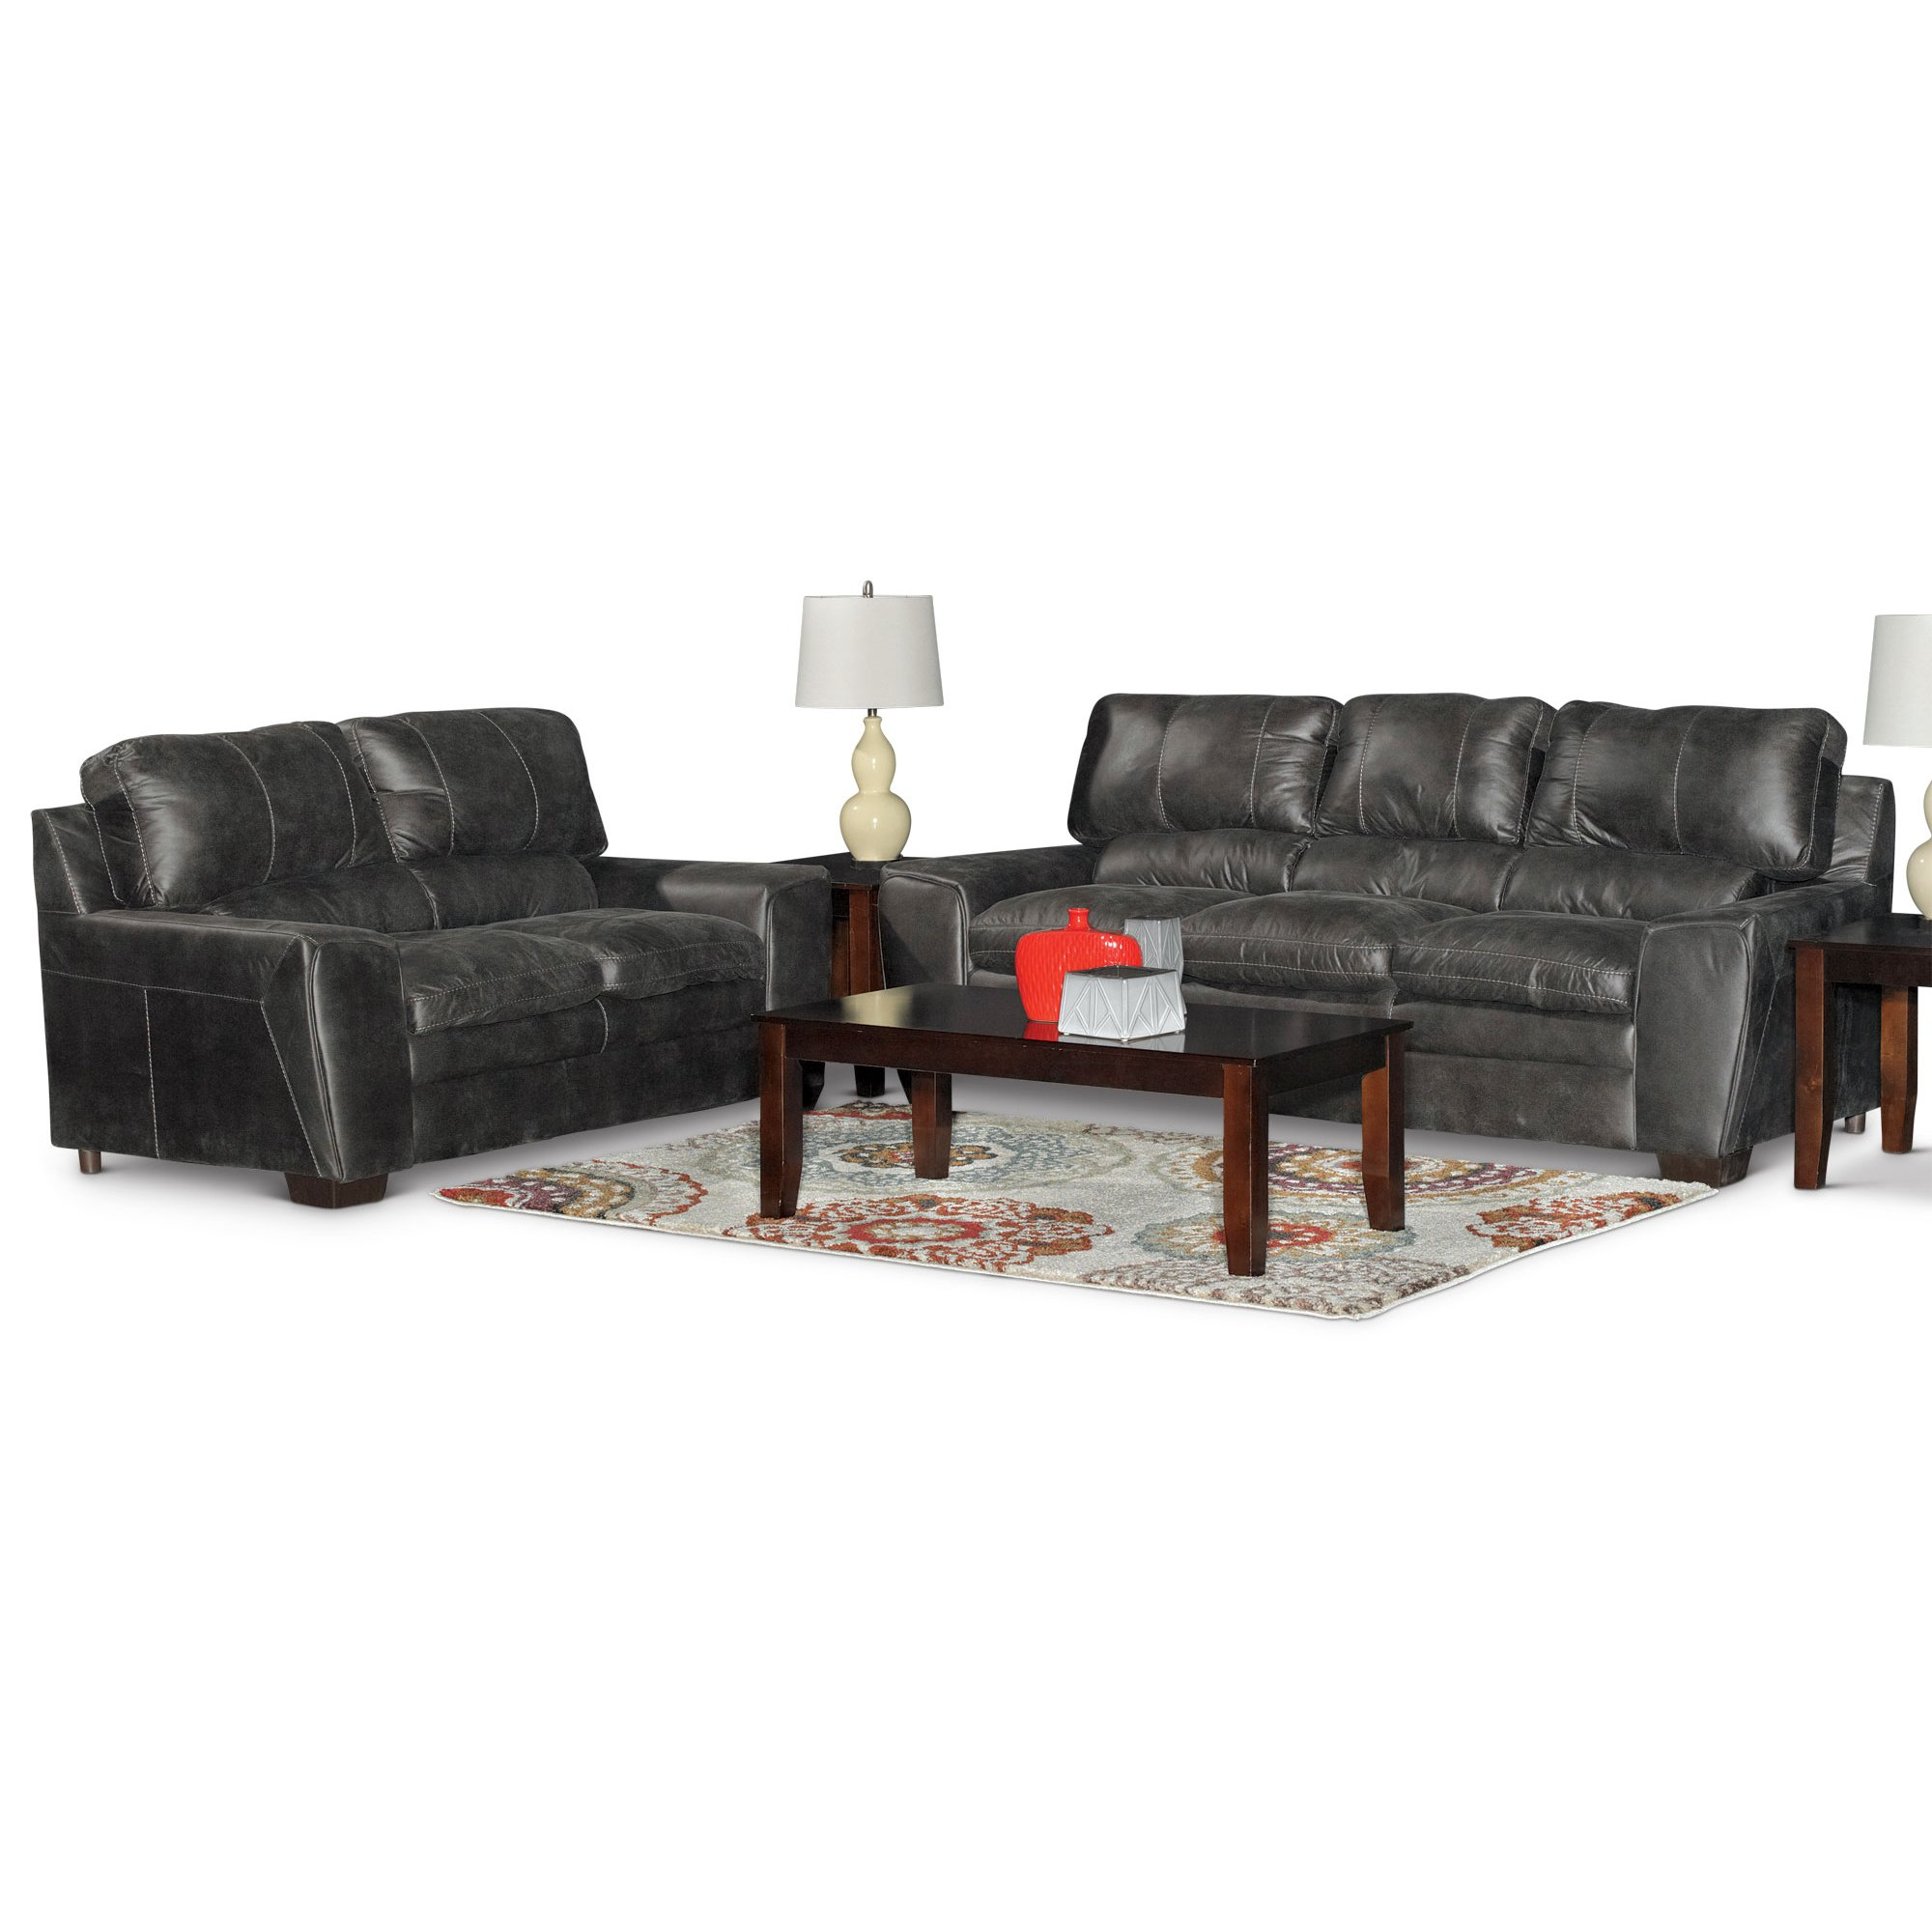 Sofa And Loveseat Impressive Inspiration Ashley Furniture Sofa And Loveseat Decoration Nolana